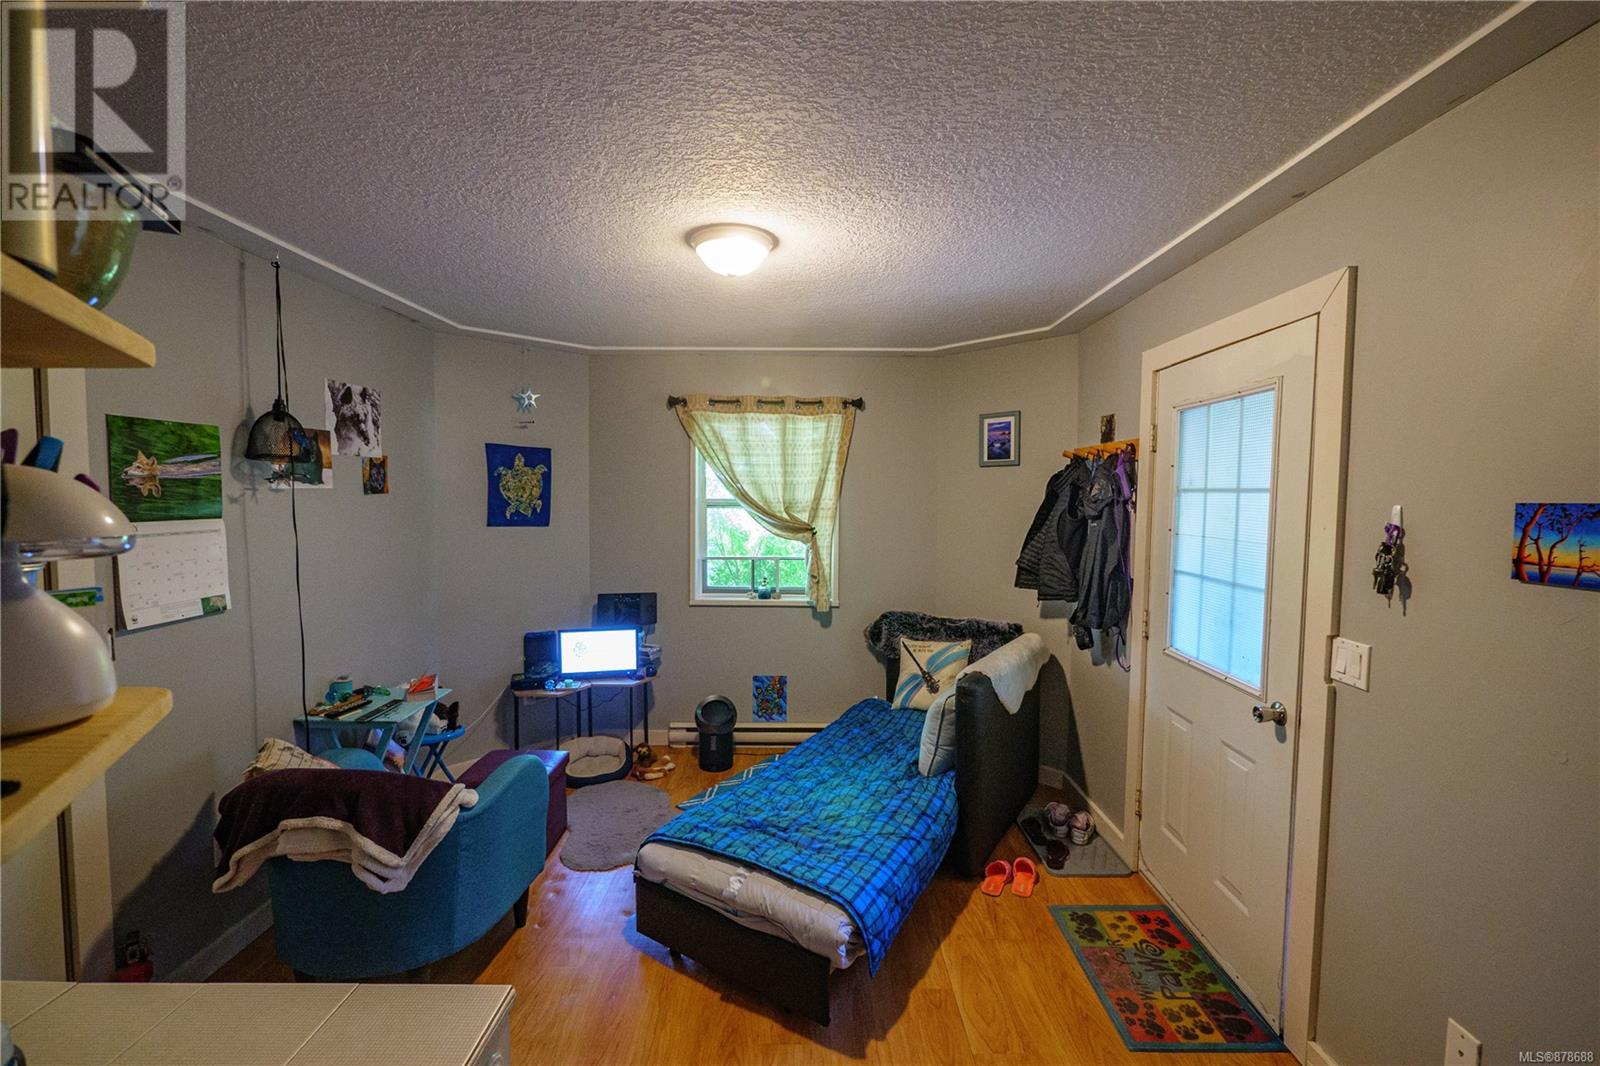 MLS® #878688 - Ucluelet Other For sale Image #11